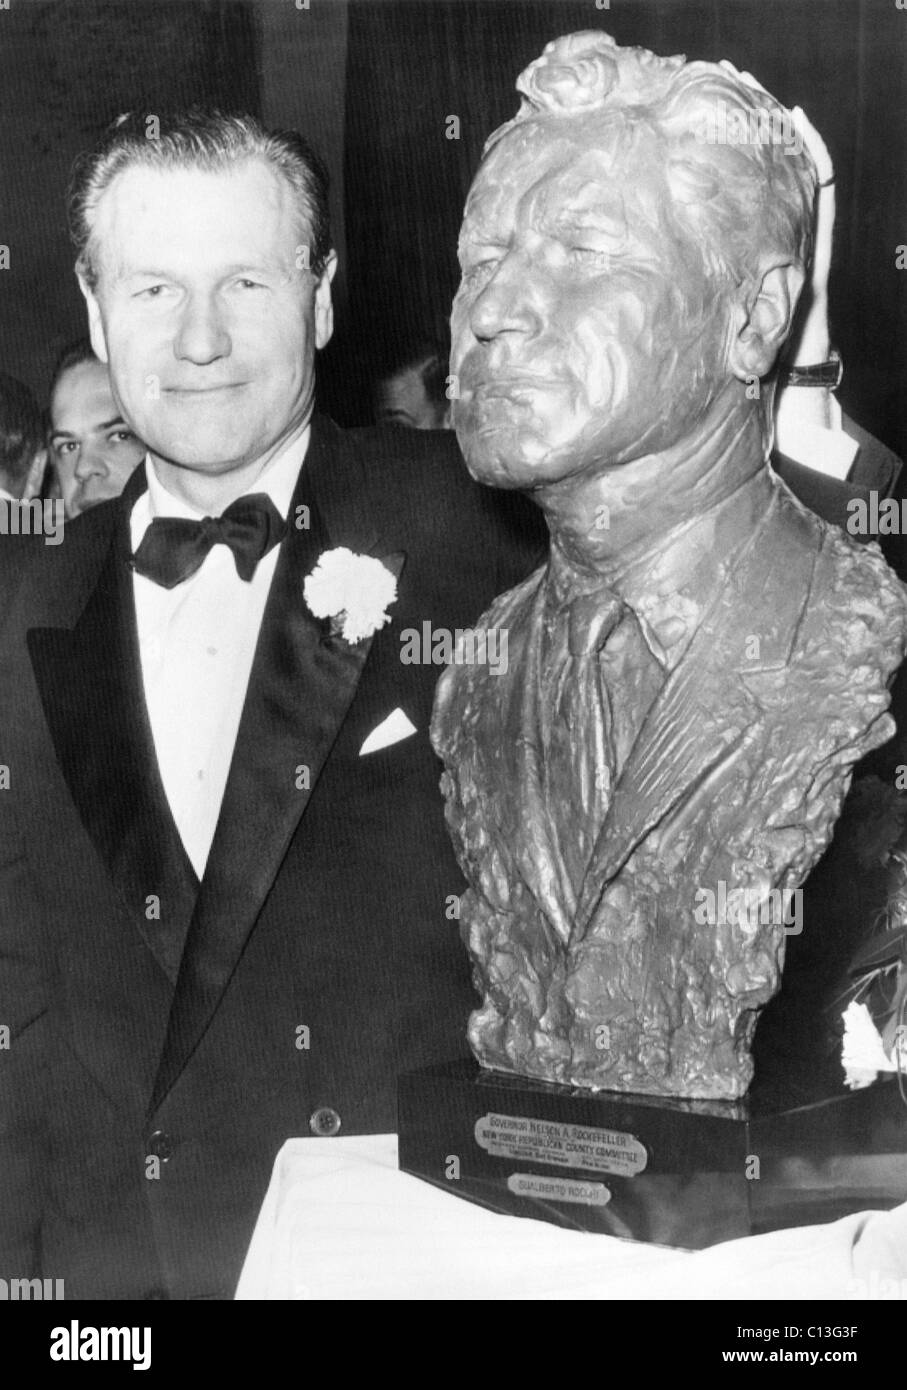 Rockefeller Family. New York Governor Nelson Rockefeller with a bust of himself by Italian sculptor Gualberto Rocchi. - Stock Image